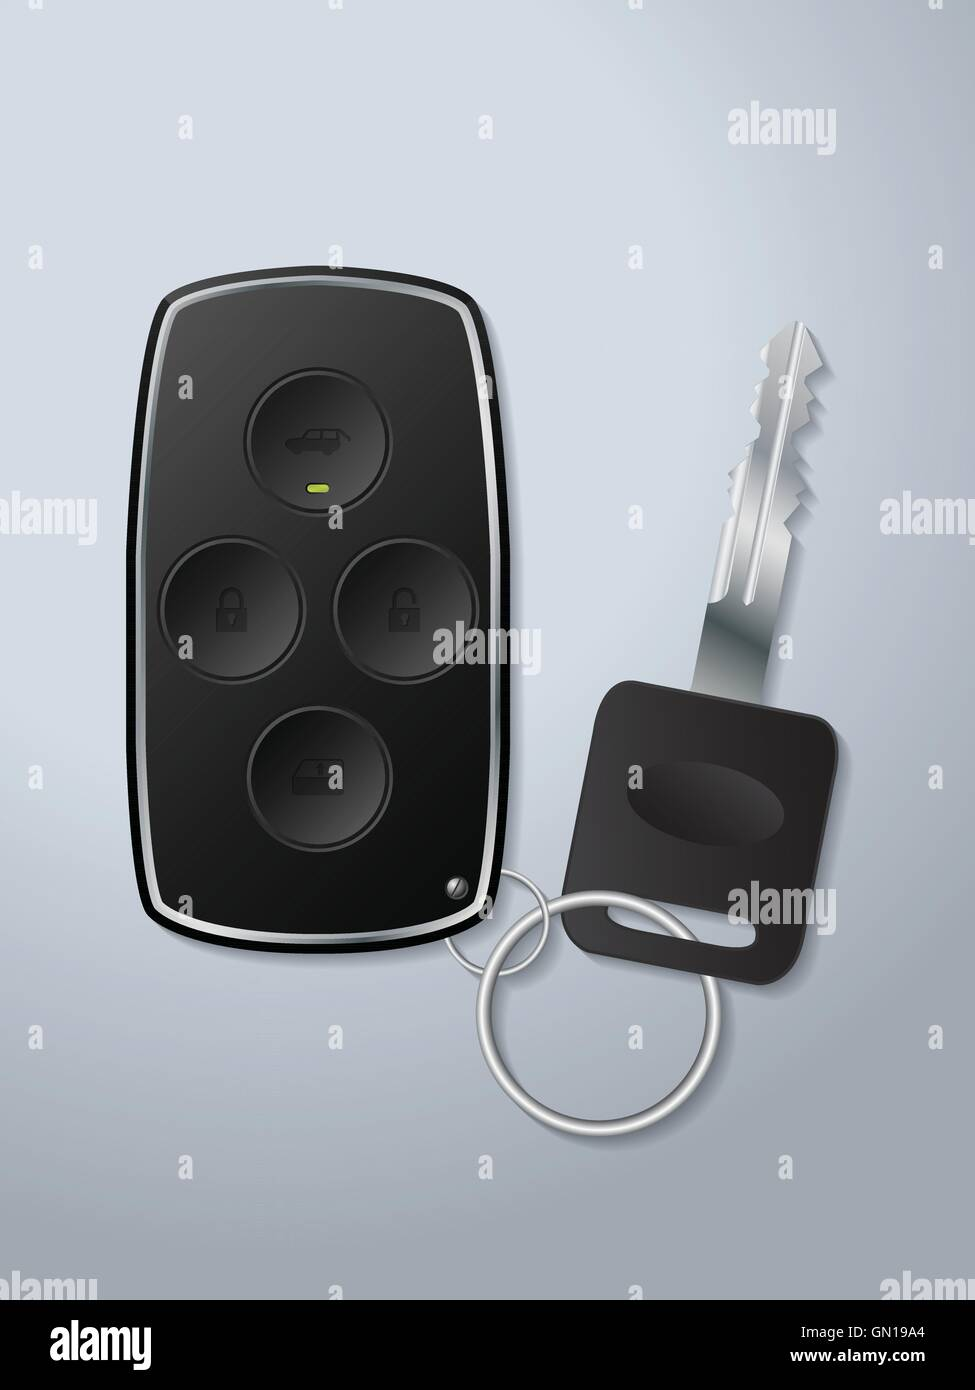 Car remote key with circle shaped buttons - Stock Vector